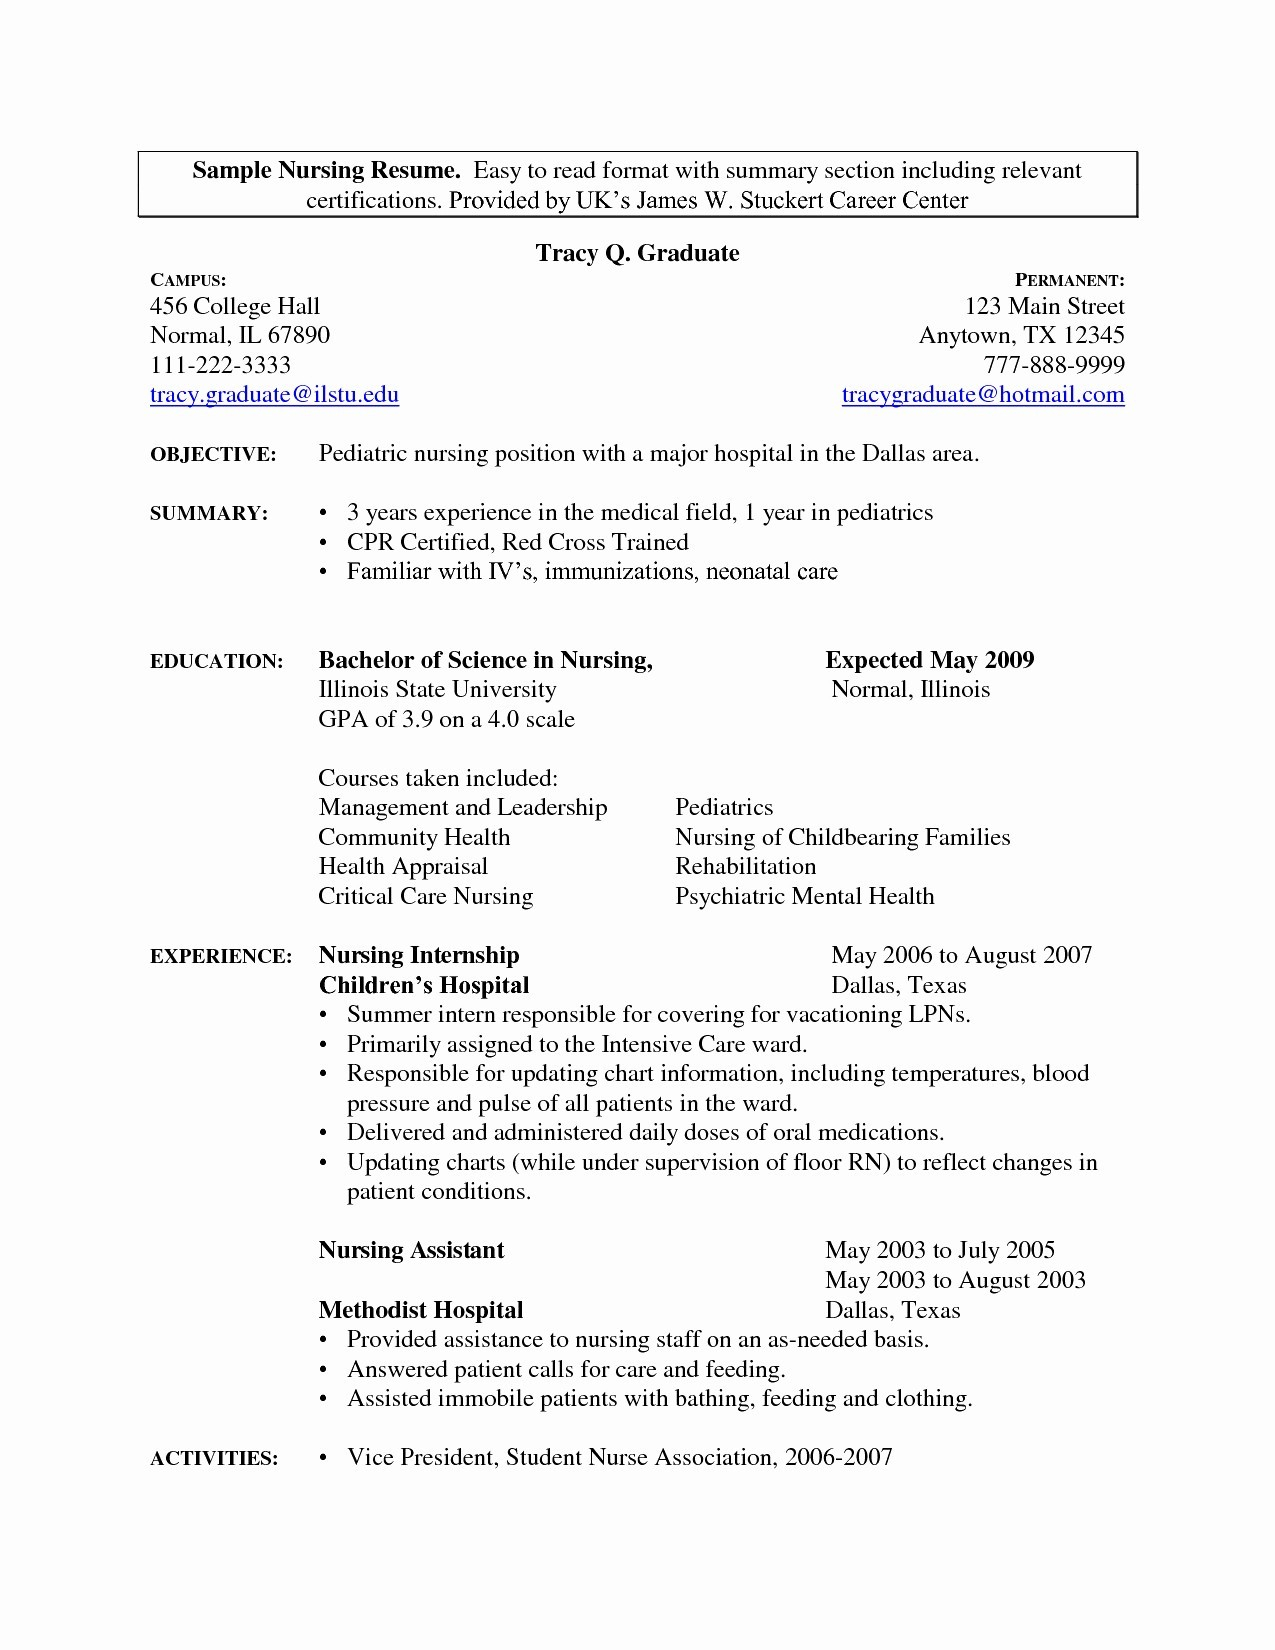 Paralegal Cover Letter Template - Data Backup Plan Template Best Of Paralegal Cover Letter Beautiful